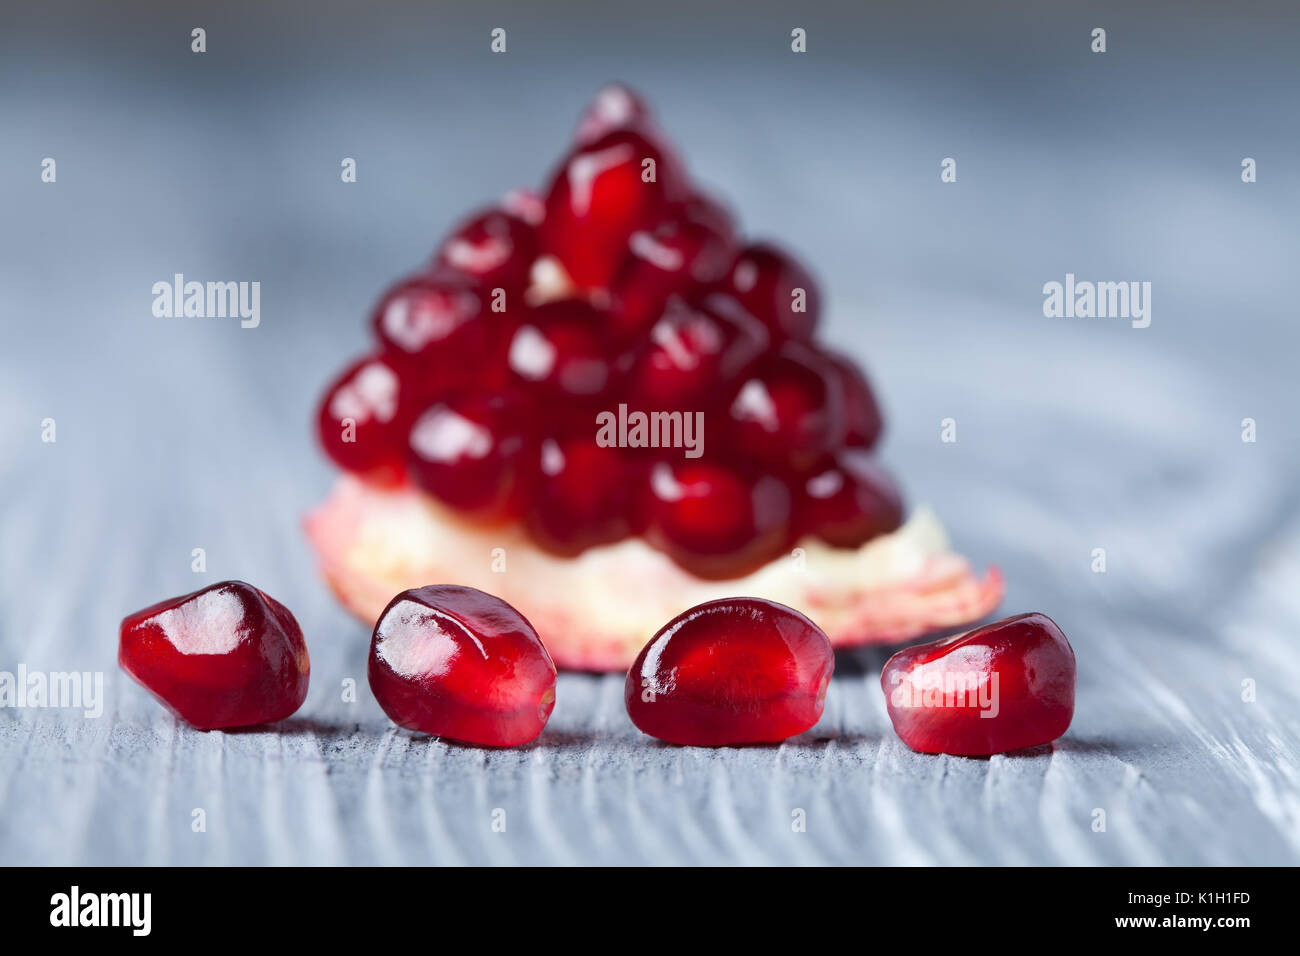 Pomegranate seeds. Part of pomegranate fruit. old gray wooden background. Macro view. (Soft focus). - Stock Image